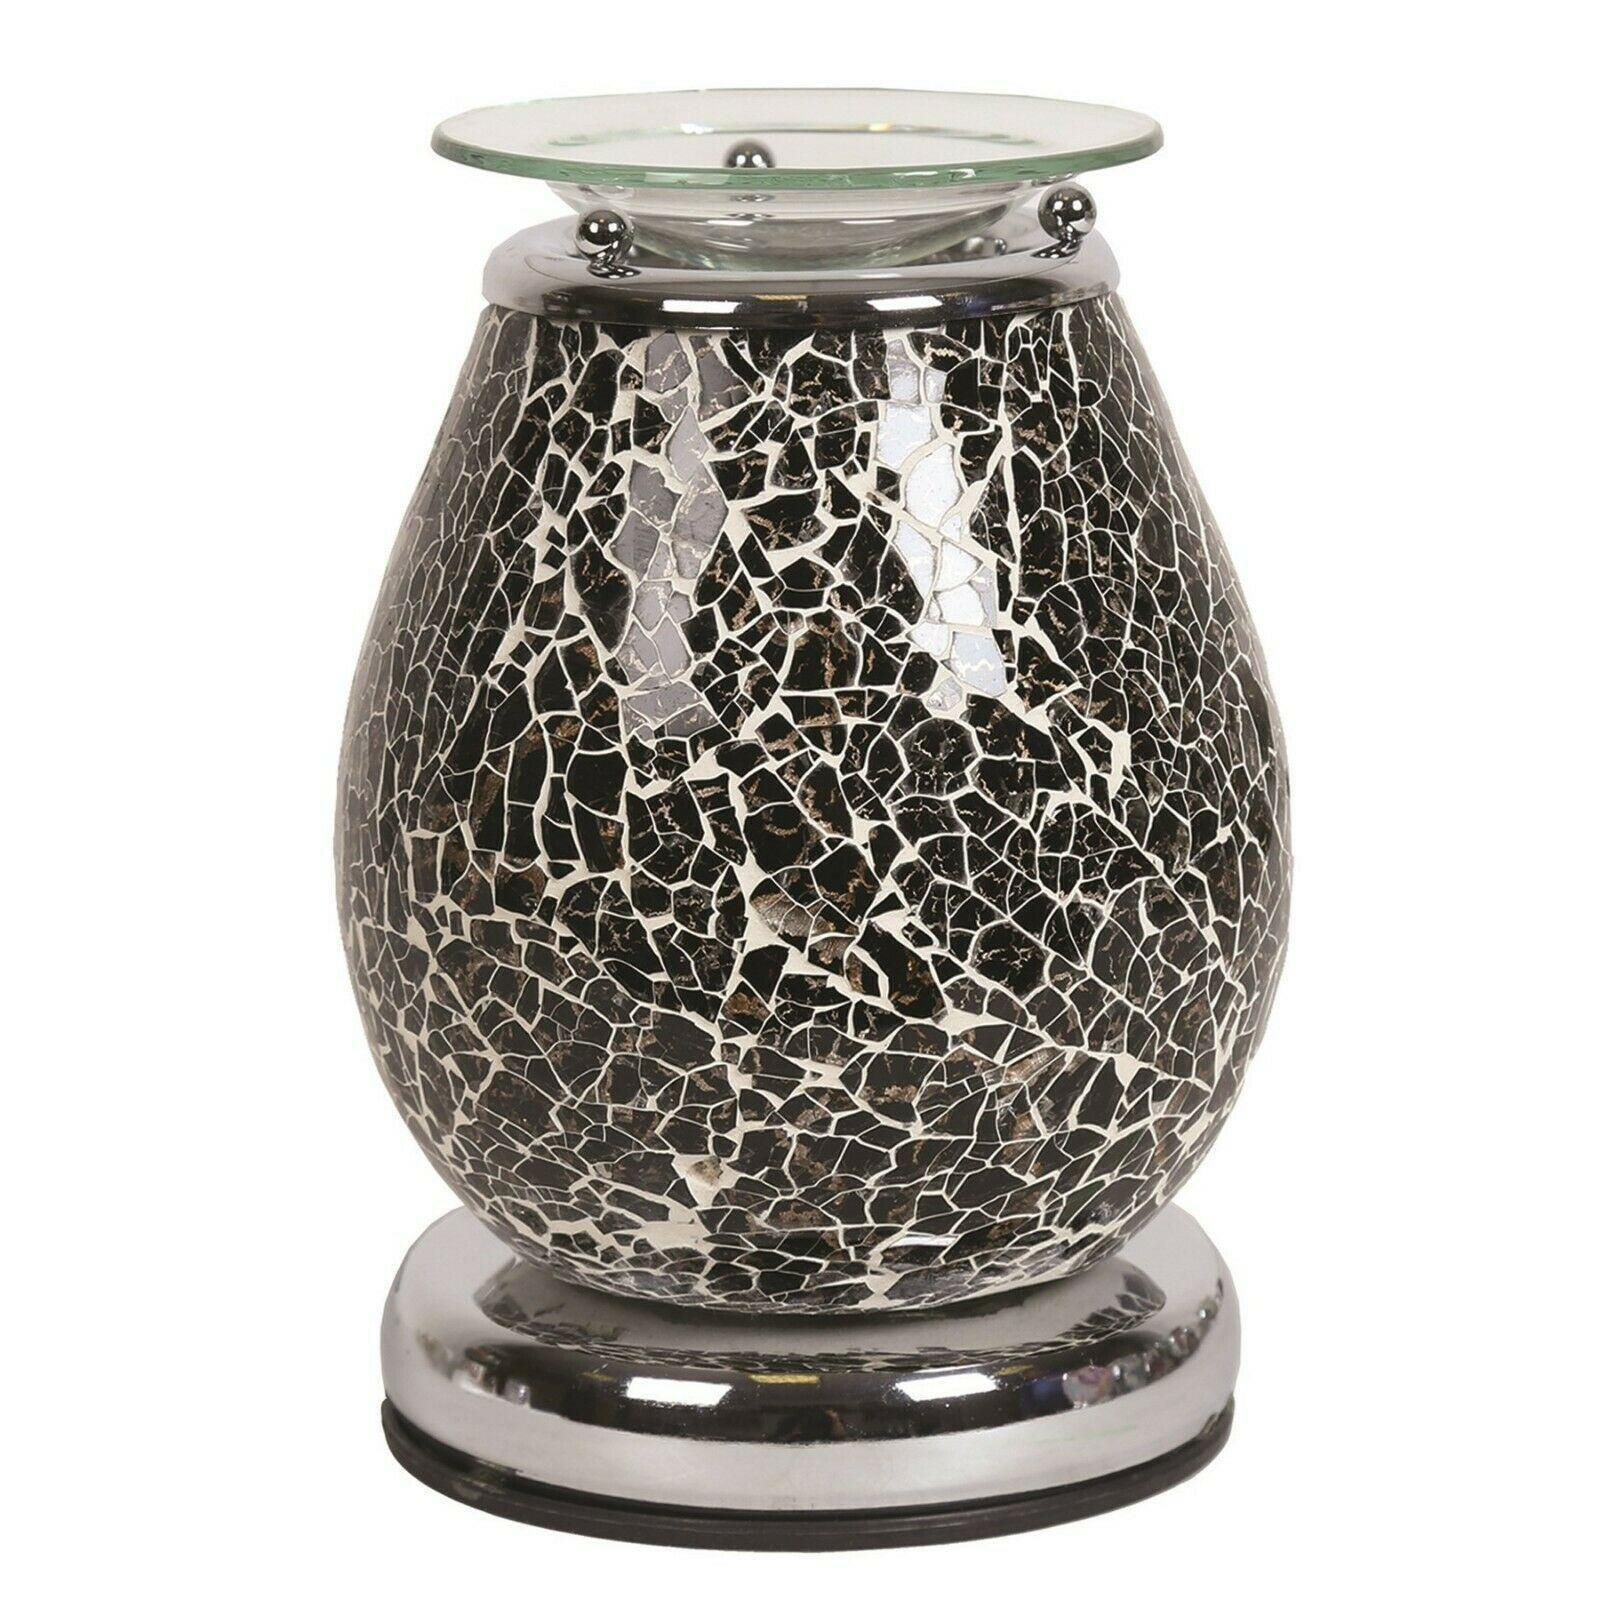 Aroma Accessories Juno Mosaic Touch Electric Wax Melt Warmer - TOSYS Candles and Gifts